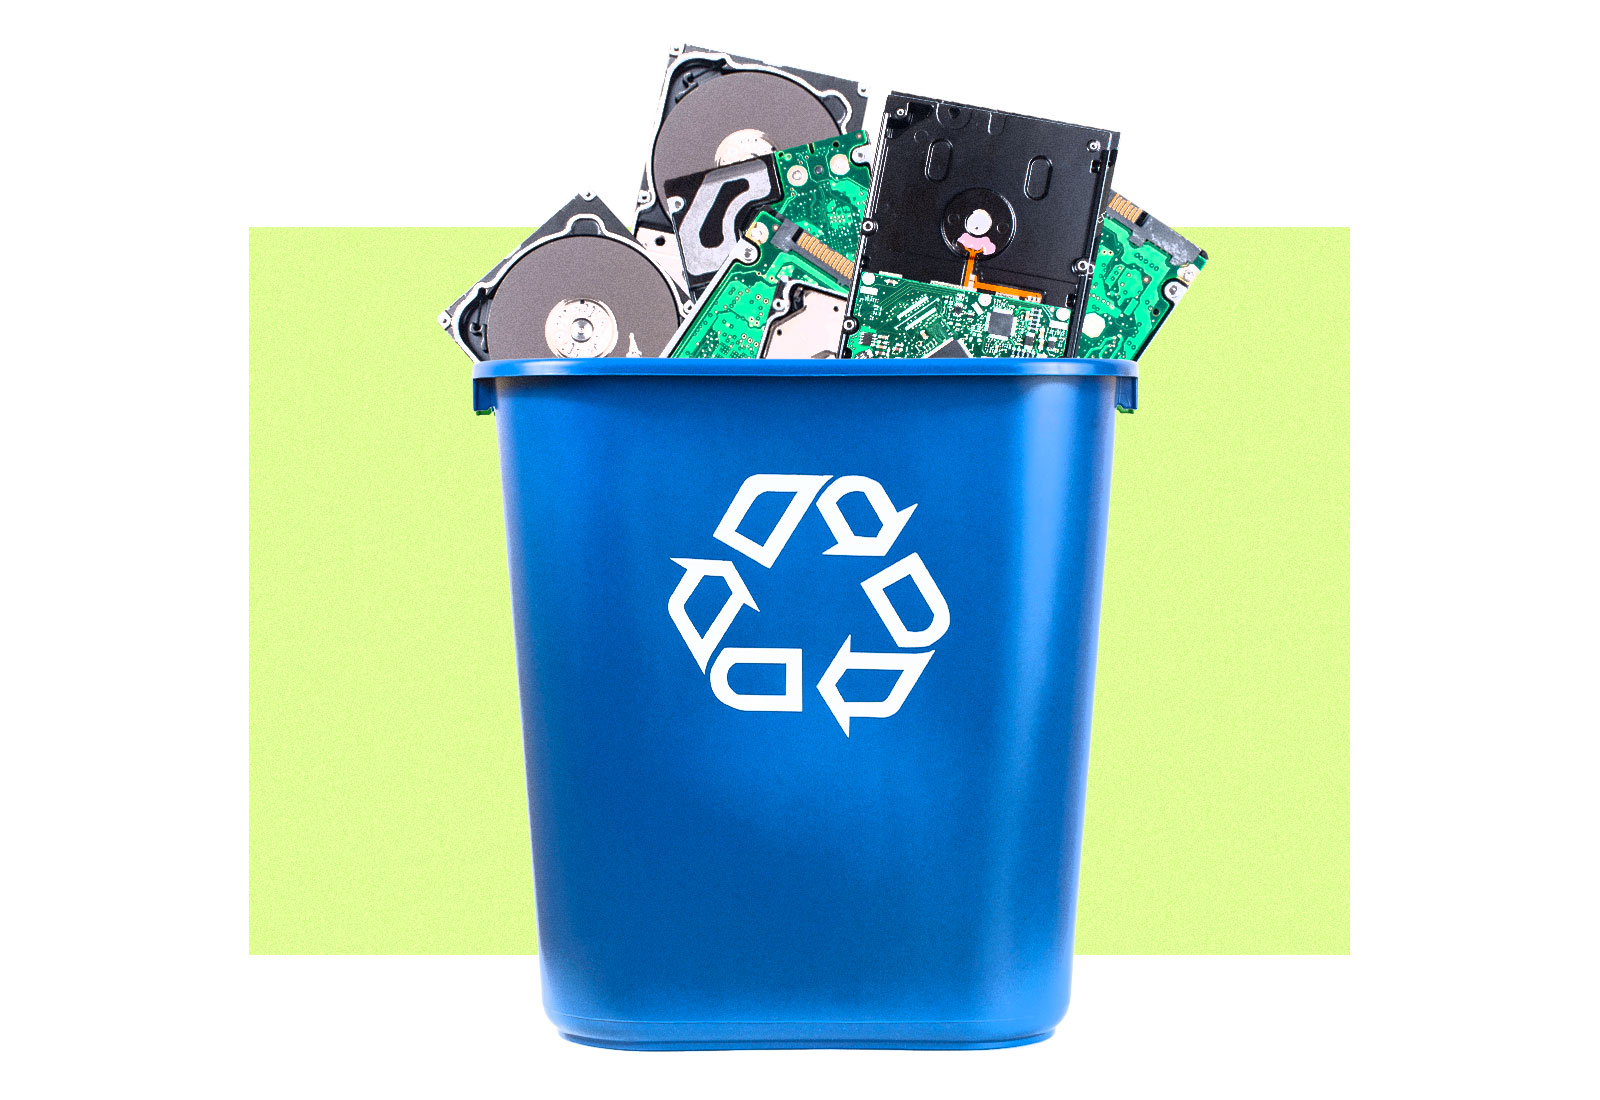 Collage: a recycling bin overflowing with hard drives